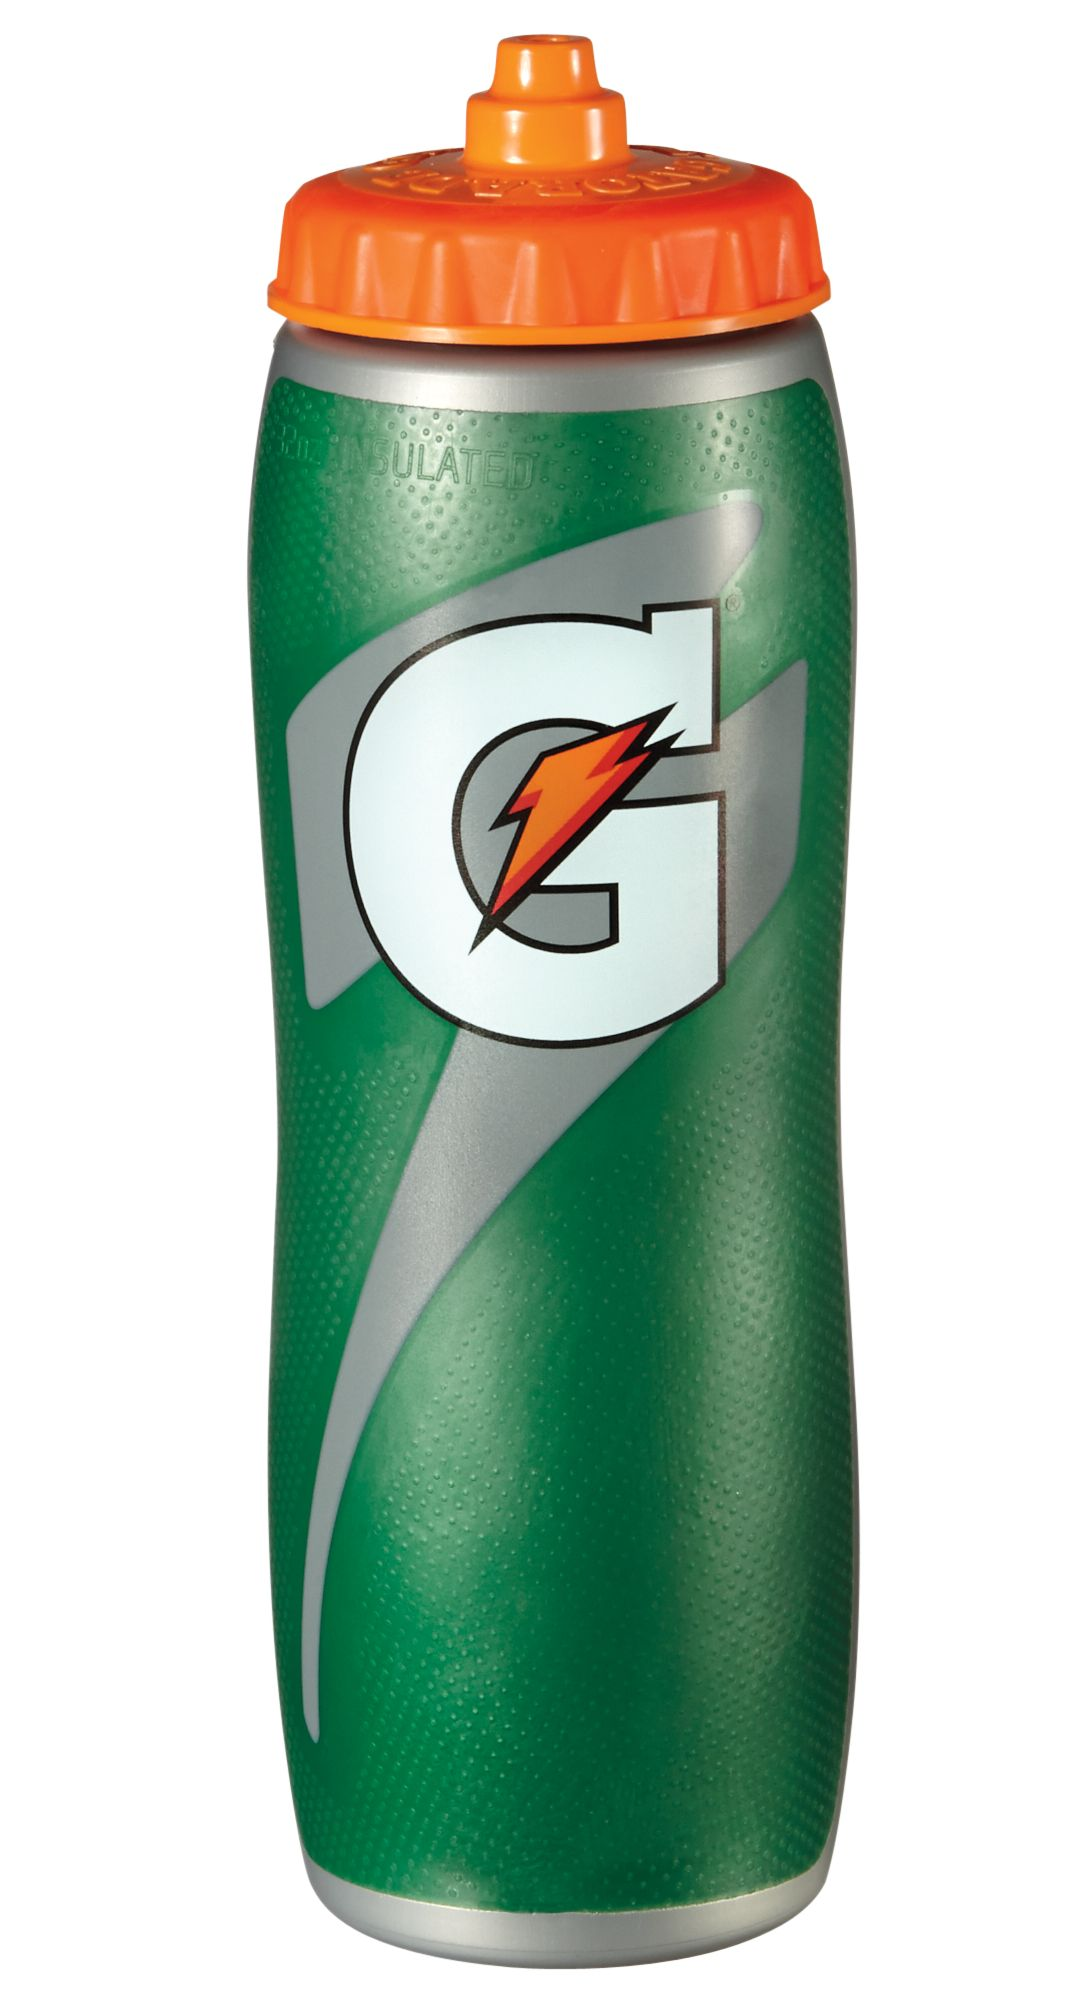 4b90c12b42 Gatorade 32 oz. Insulated Squeeze Bottle | DICK'S Sporting Goods